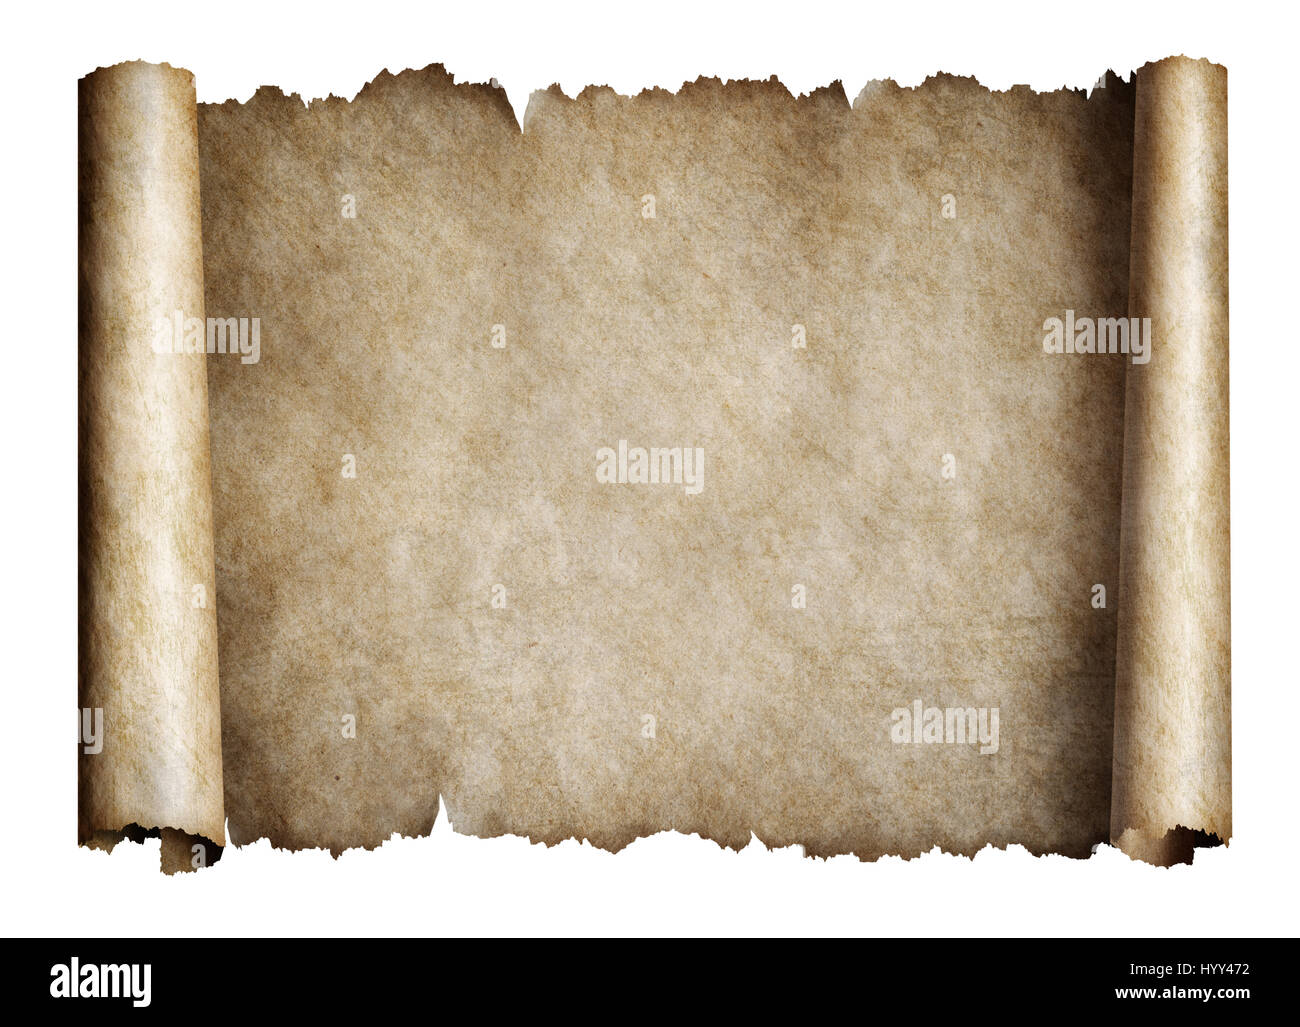 Old manusript scroll or parchment - Stock Image